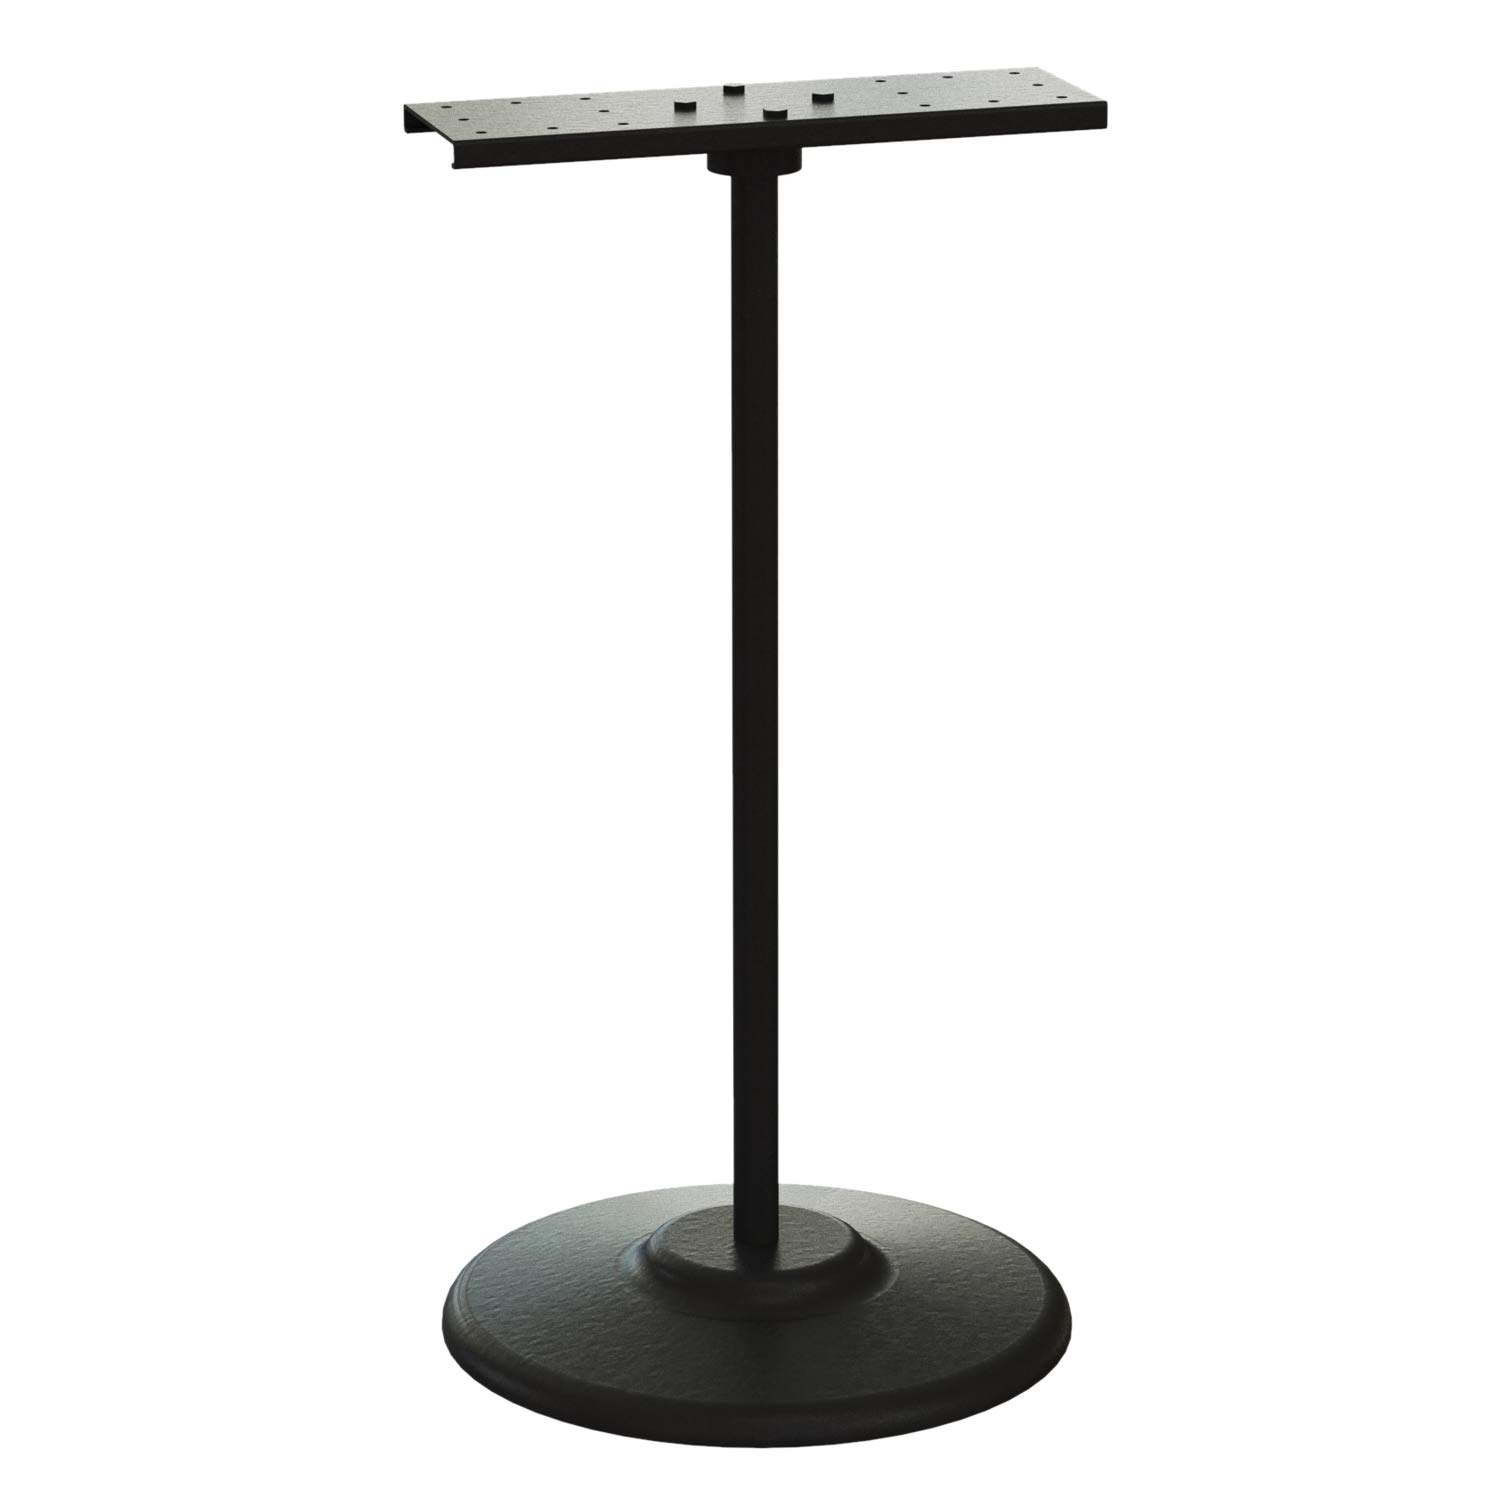 Double Black Metal Stand Mesa Mall for Machines Gumball Vending Candy 100% quality warranty! Bulk